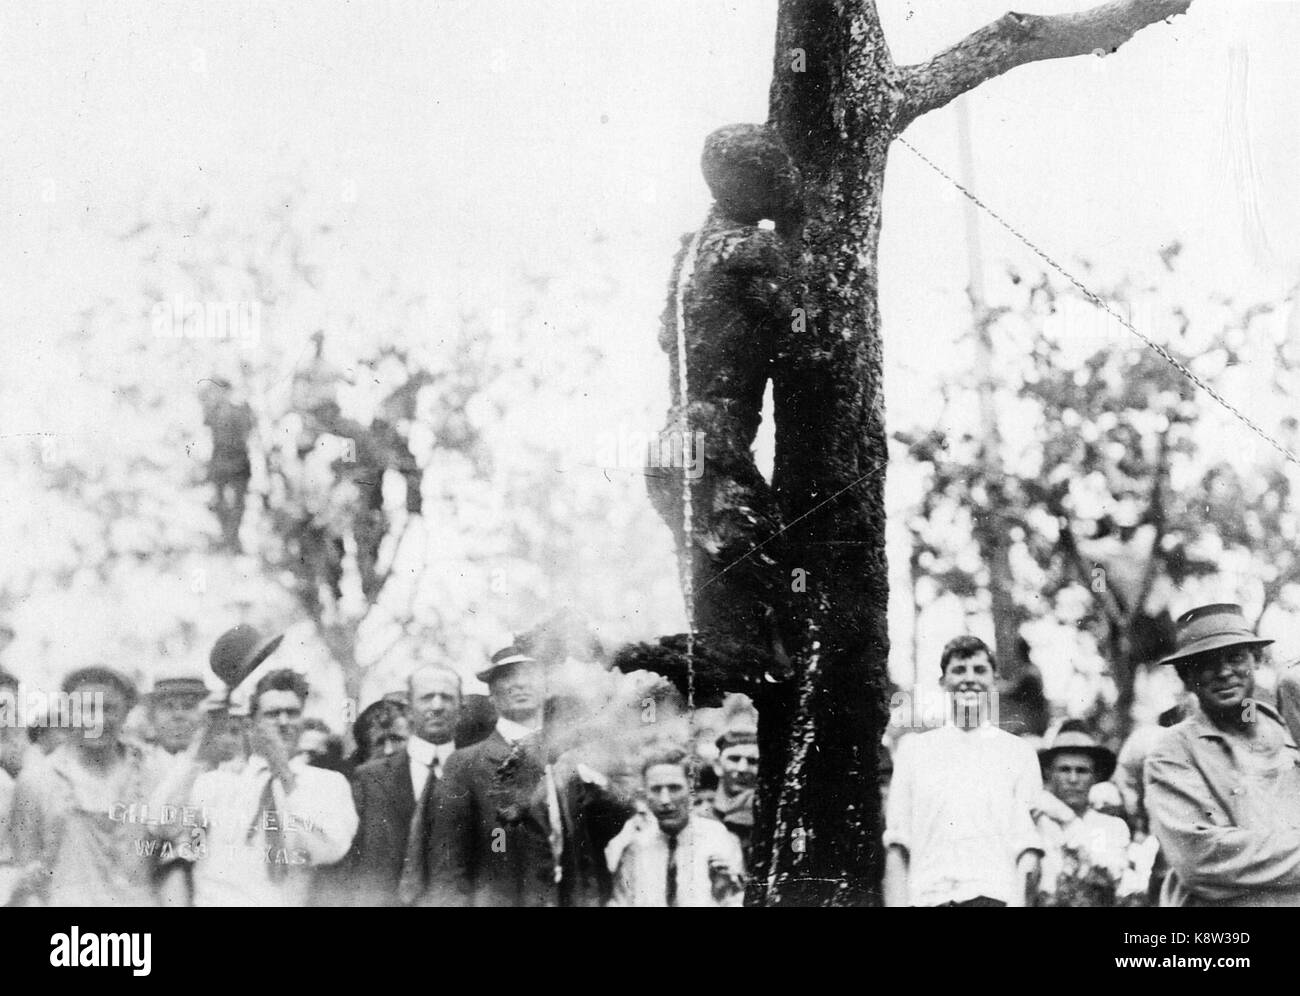 JESSE WASHINGTON Crowd watching the burnt body of the 18 year old Afro-American after his torture and lynching at - Stock Image